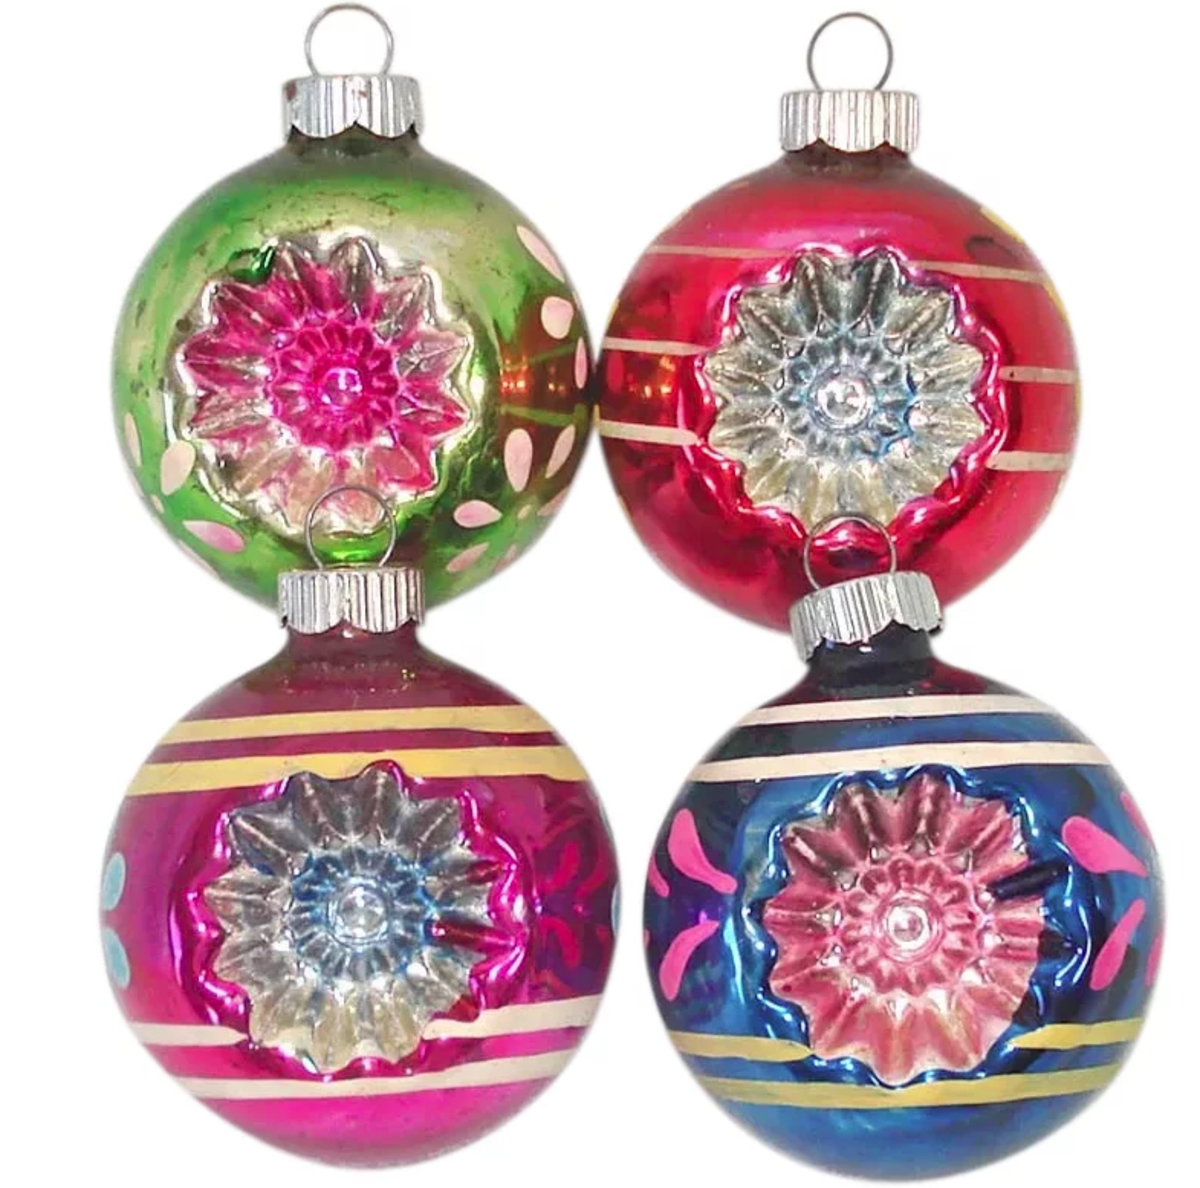 "A set of four brightly colored Shiny Brite double star flower indent glass ornaments, late 1940s to early 1950s, 2-1/4"" h; $40."